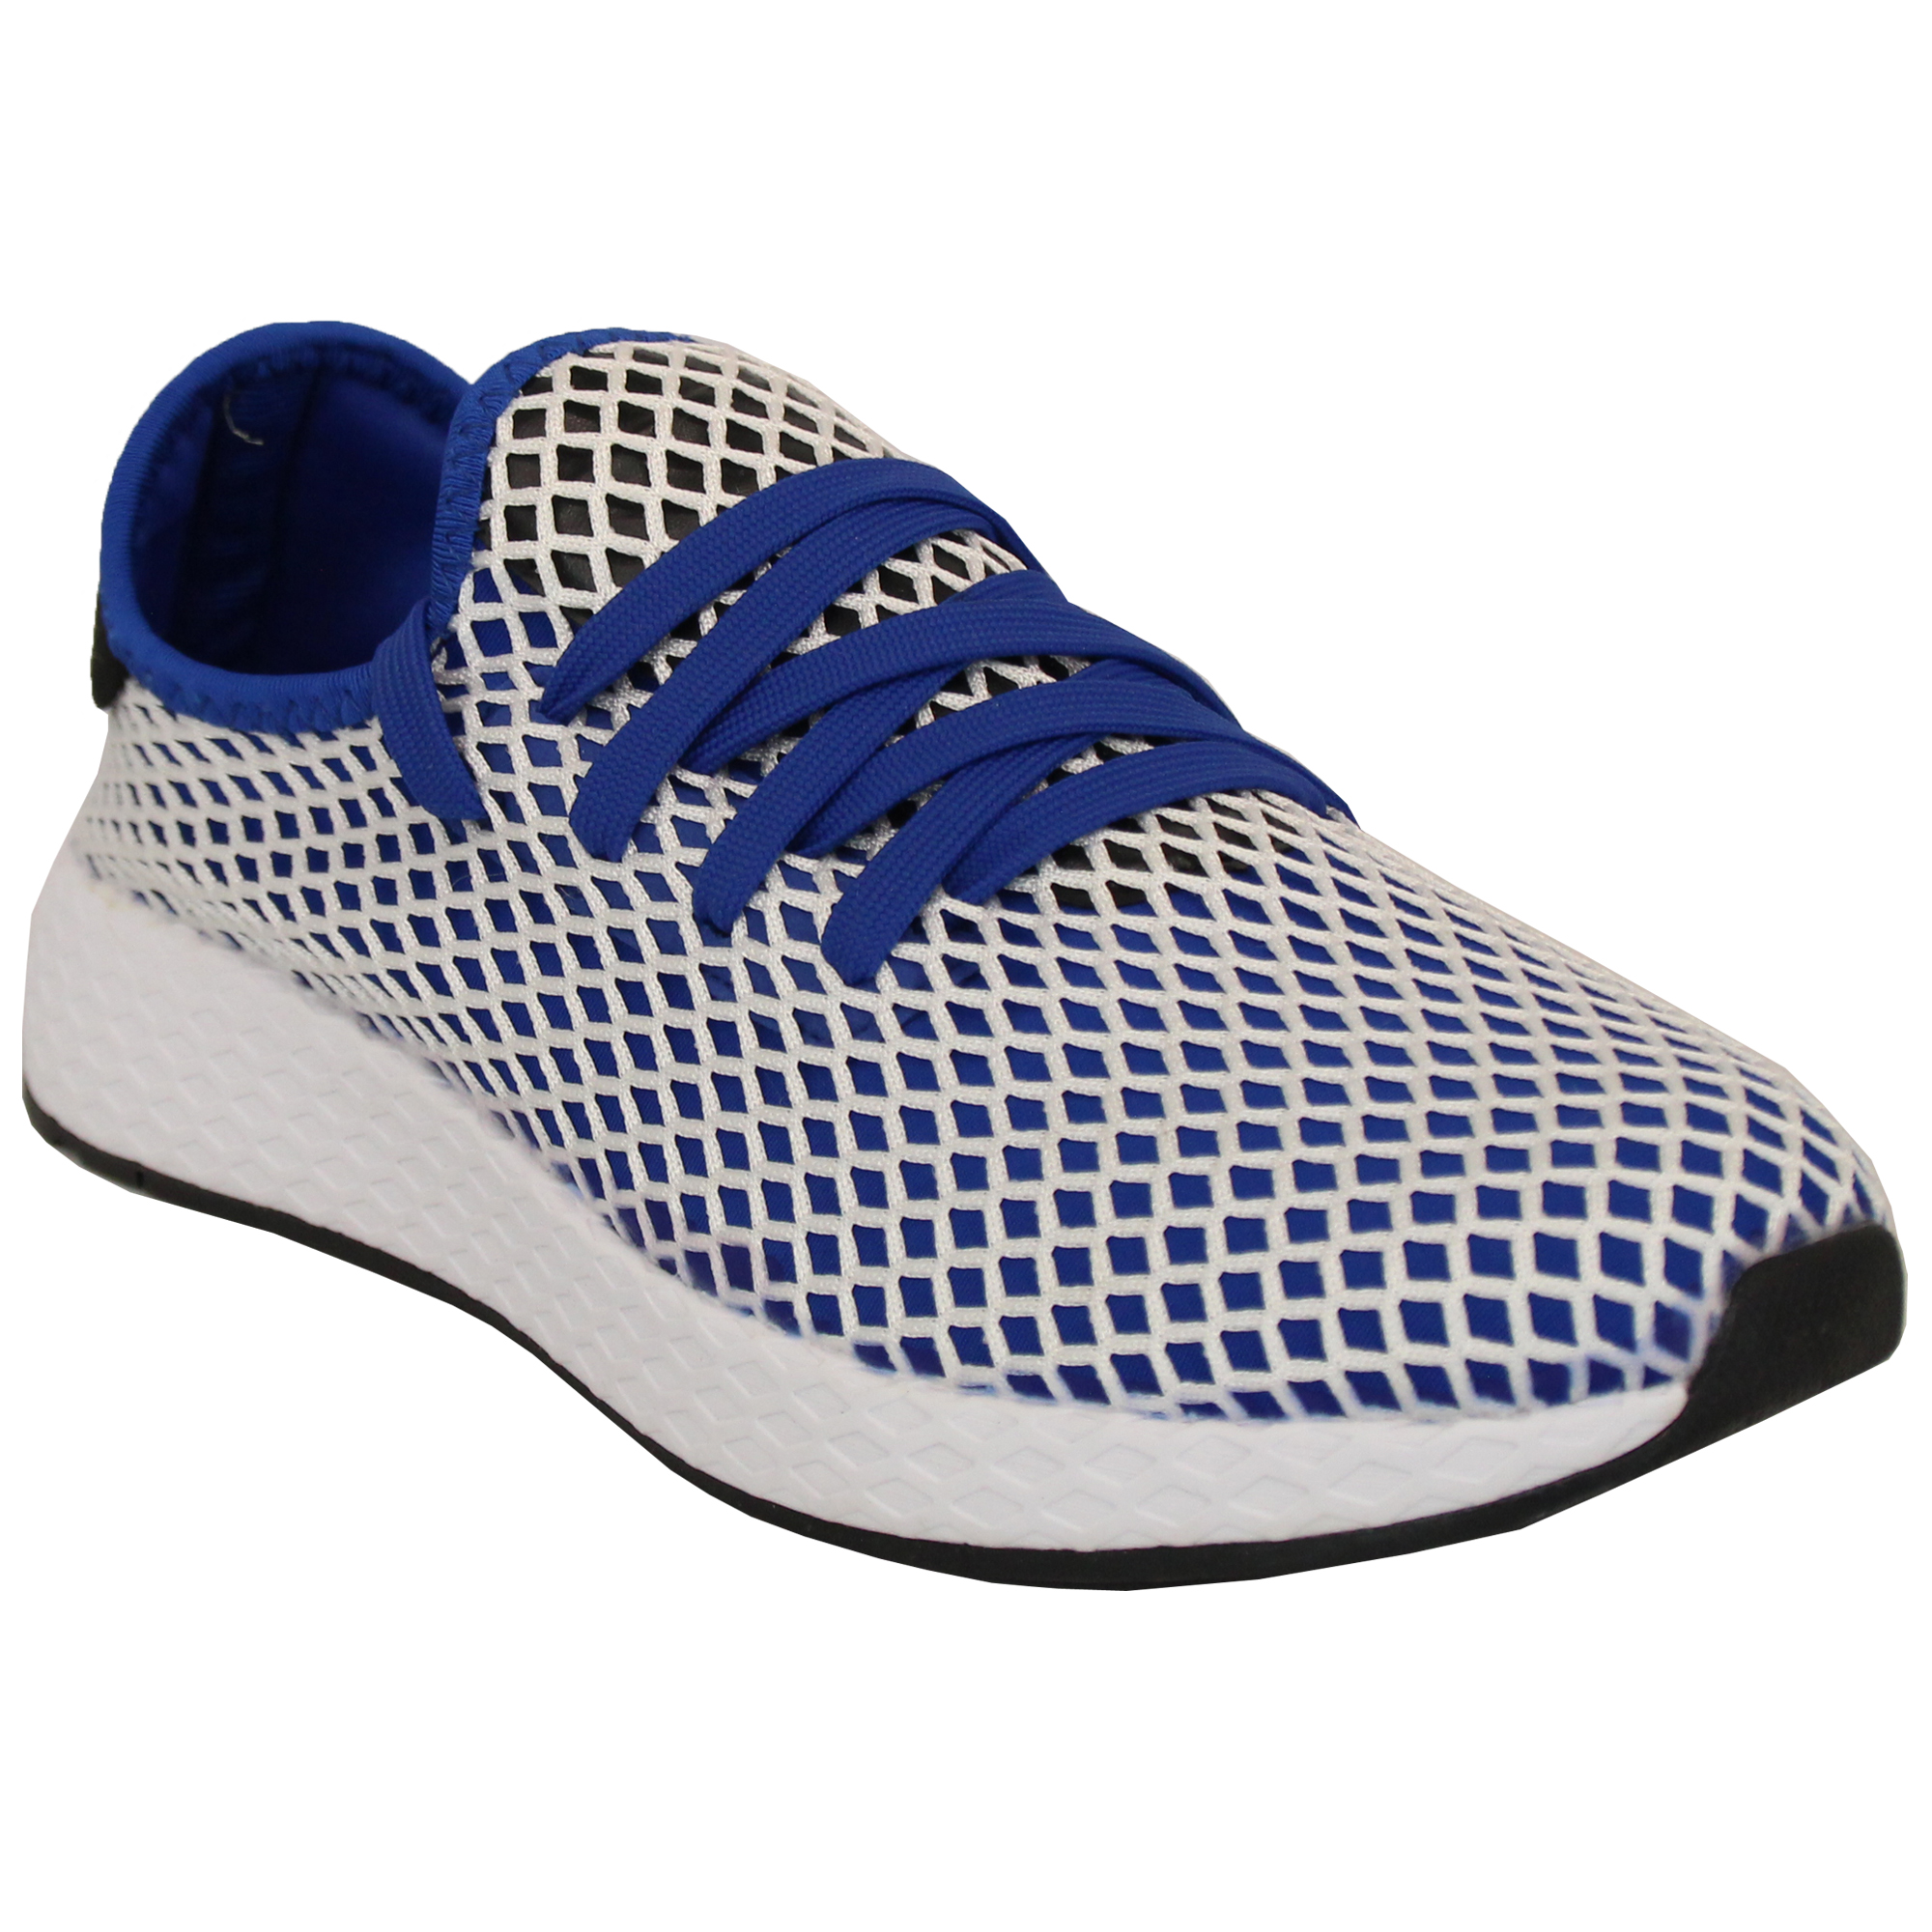 7022d561336a3a Mens Trainers Lace Up Active Running Jogging Walking Mesh Gym Shoes ...